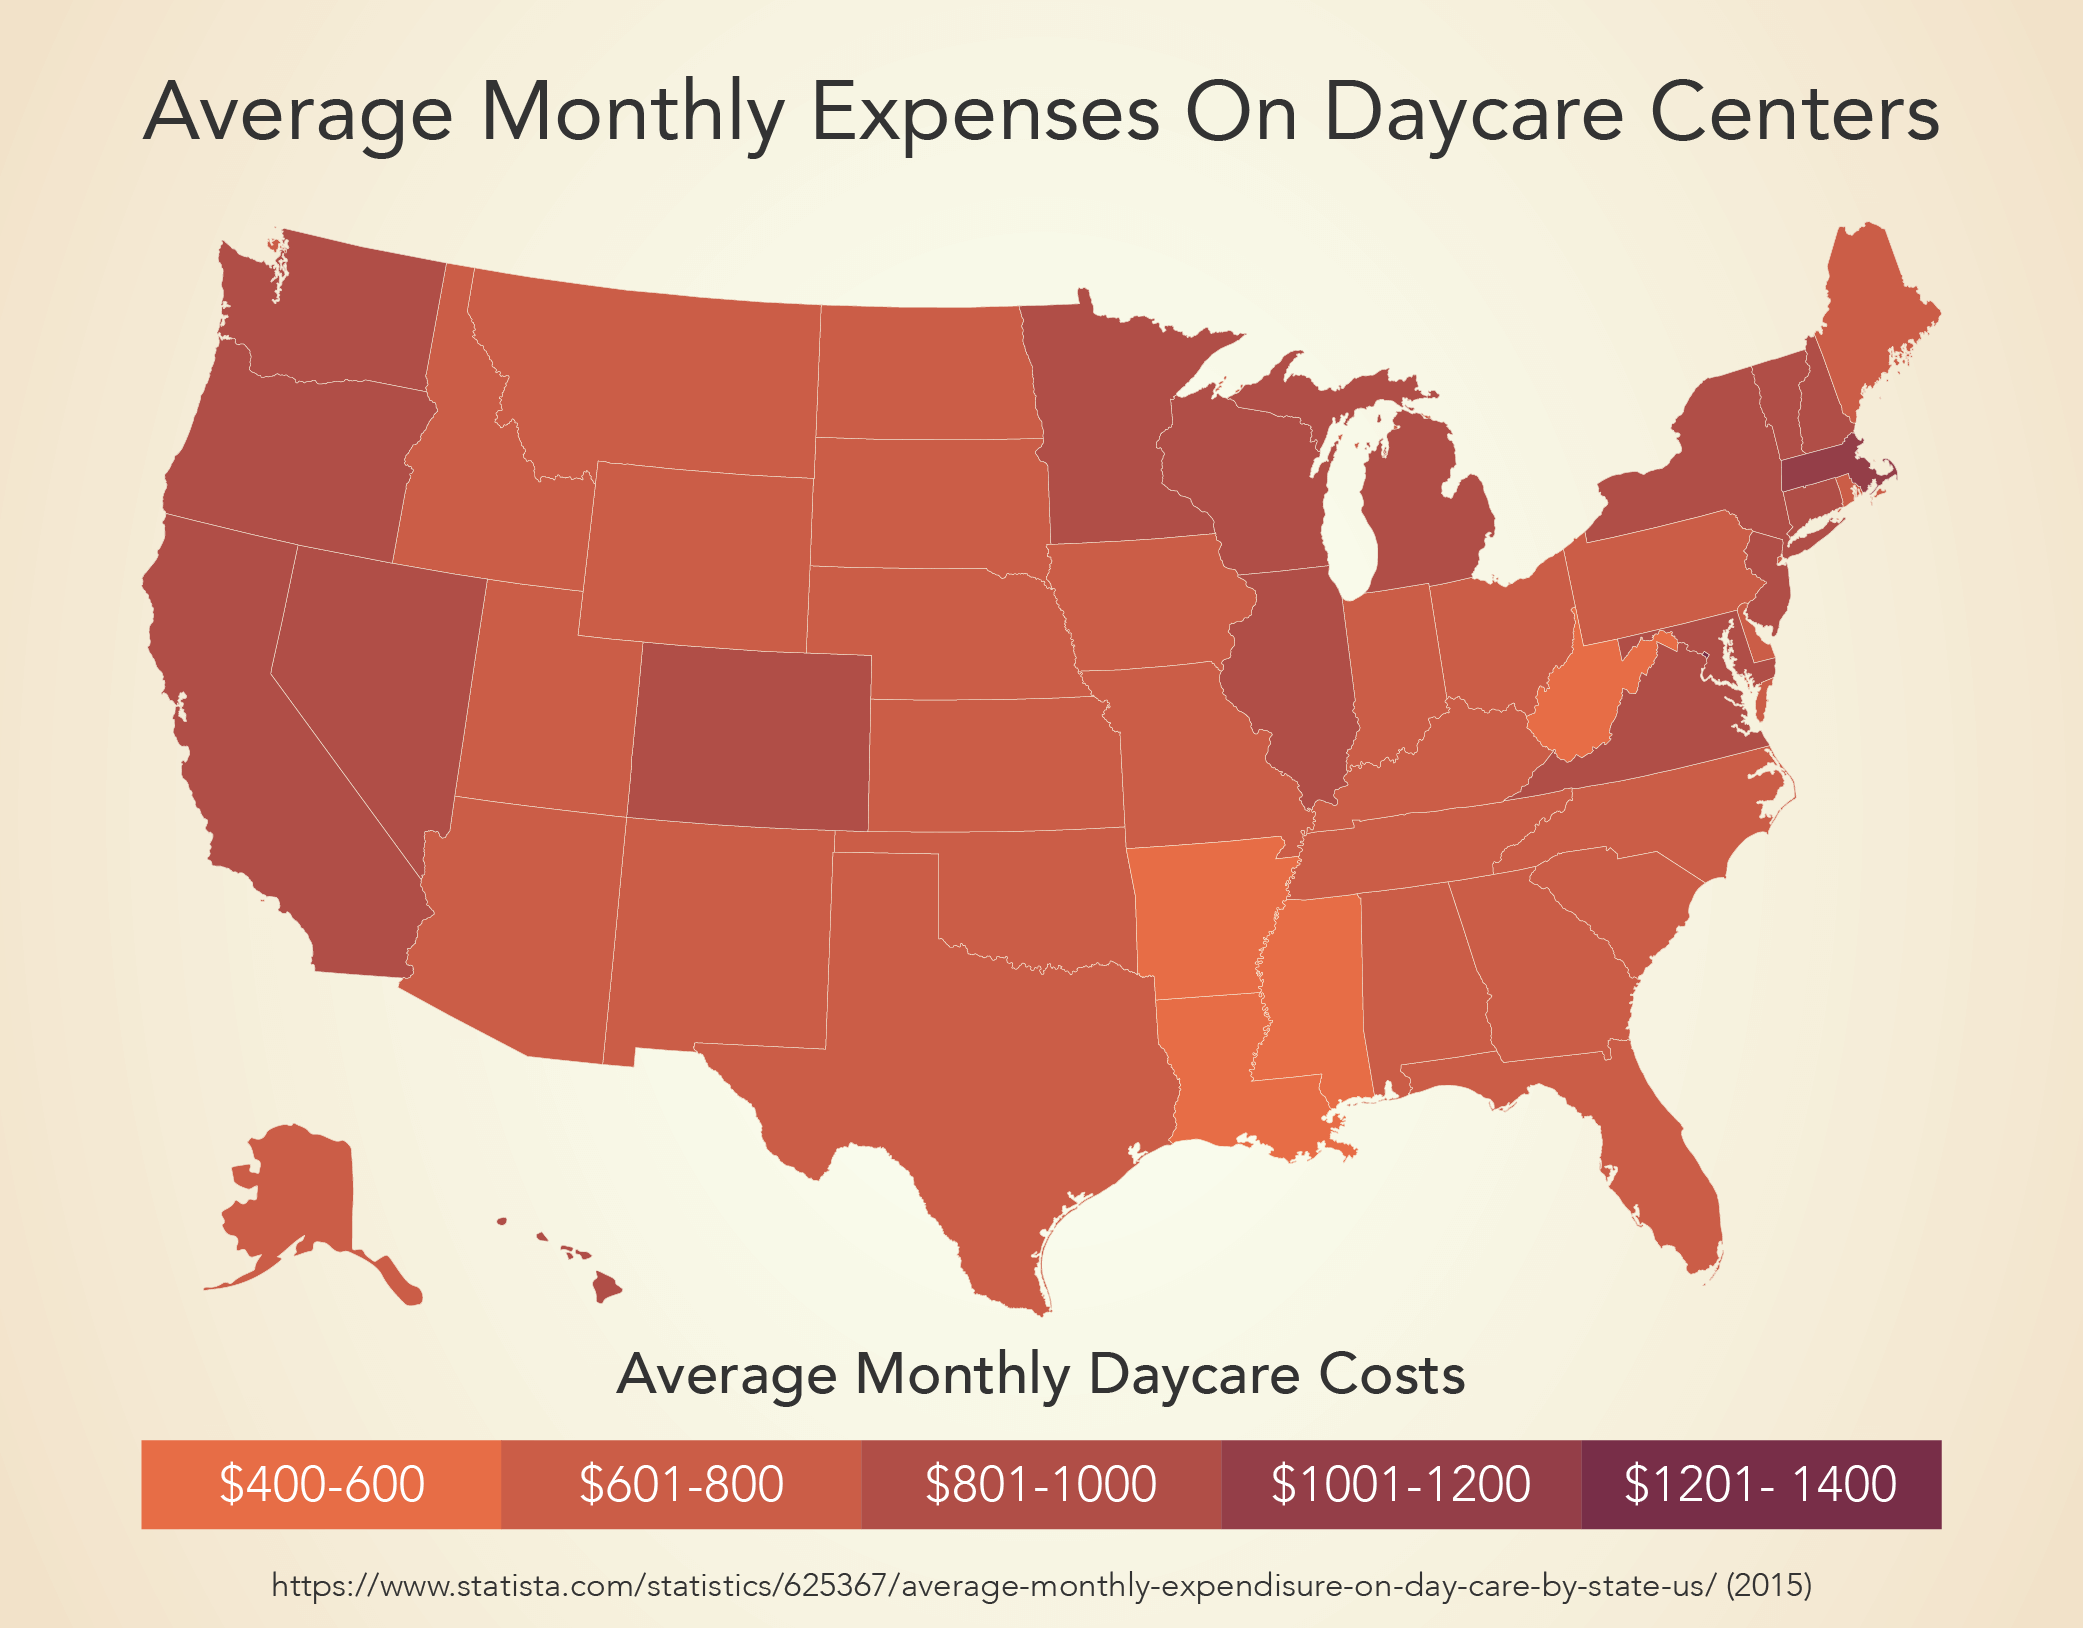 Average Monthly Expenses On Daycare Centers